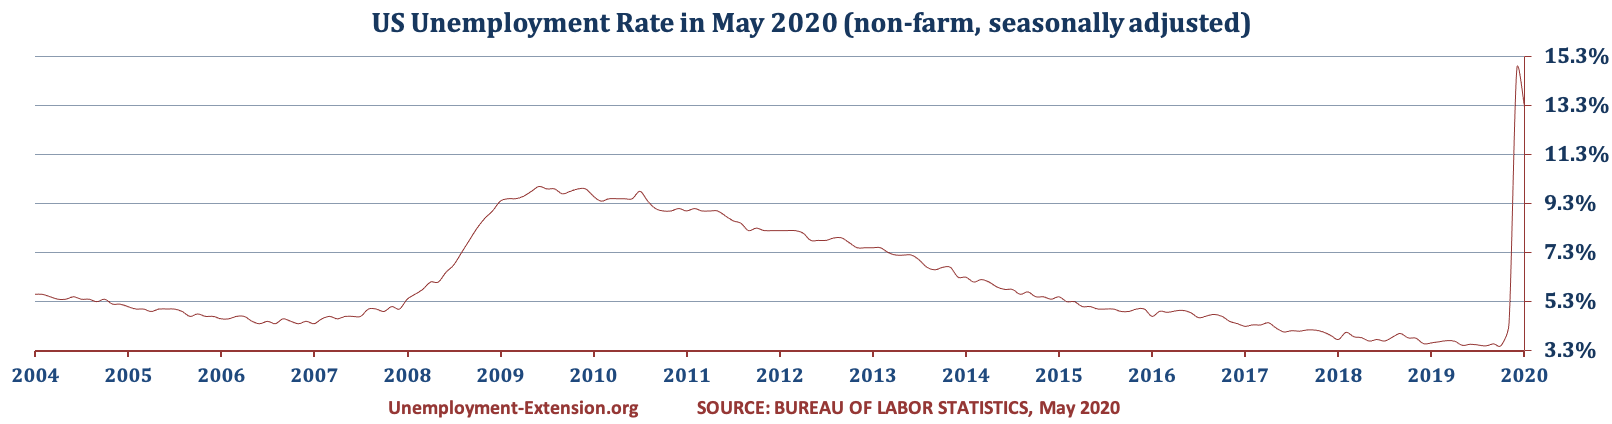 US Unemployment Rate in May of 2020 decreased to 13.3% (April 14.7%, March, 4.4% and 3.5% in February). There was a decrease in the US Unemployment rate for short-term category offset by increases in mid- and long-term categories.